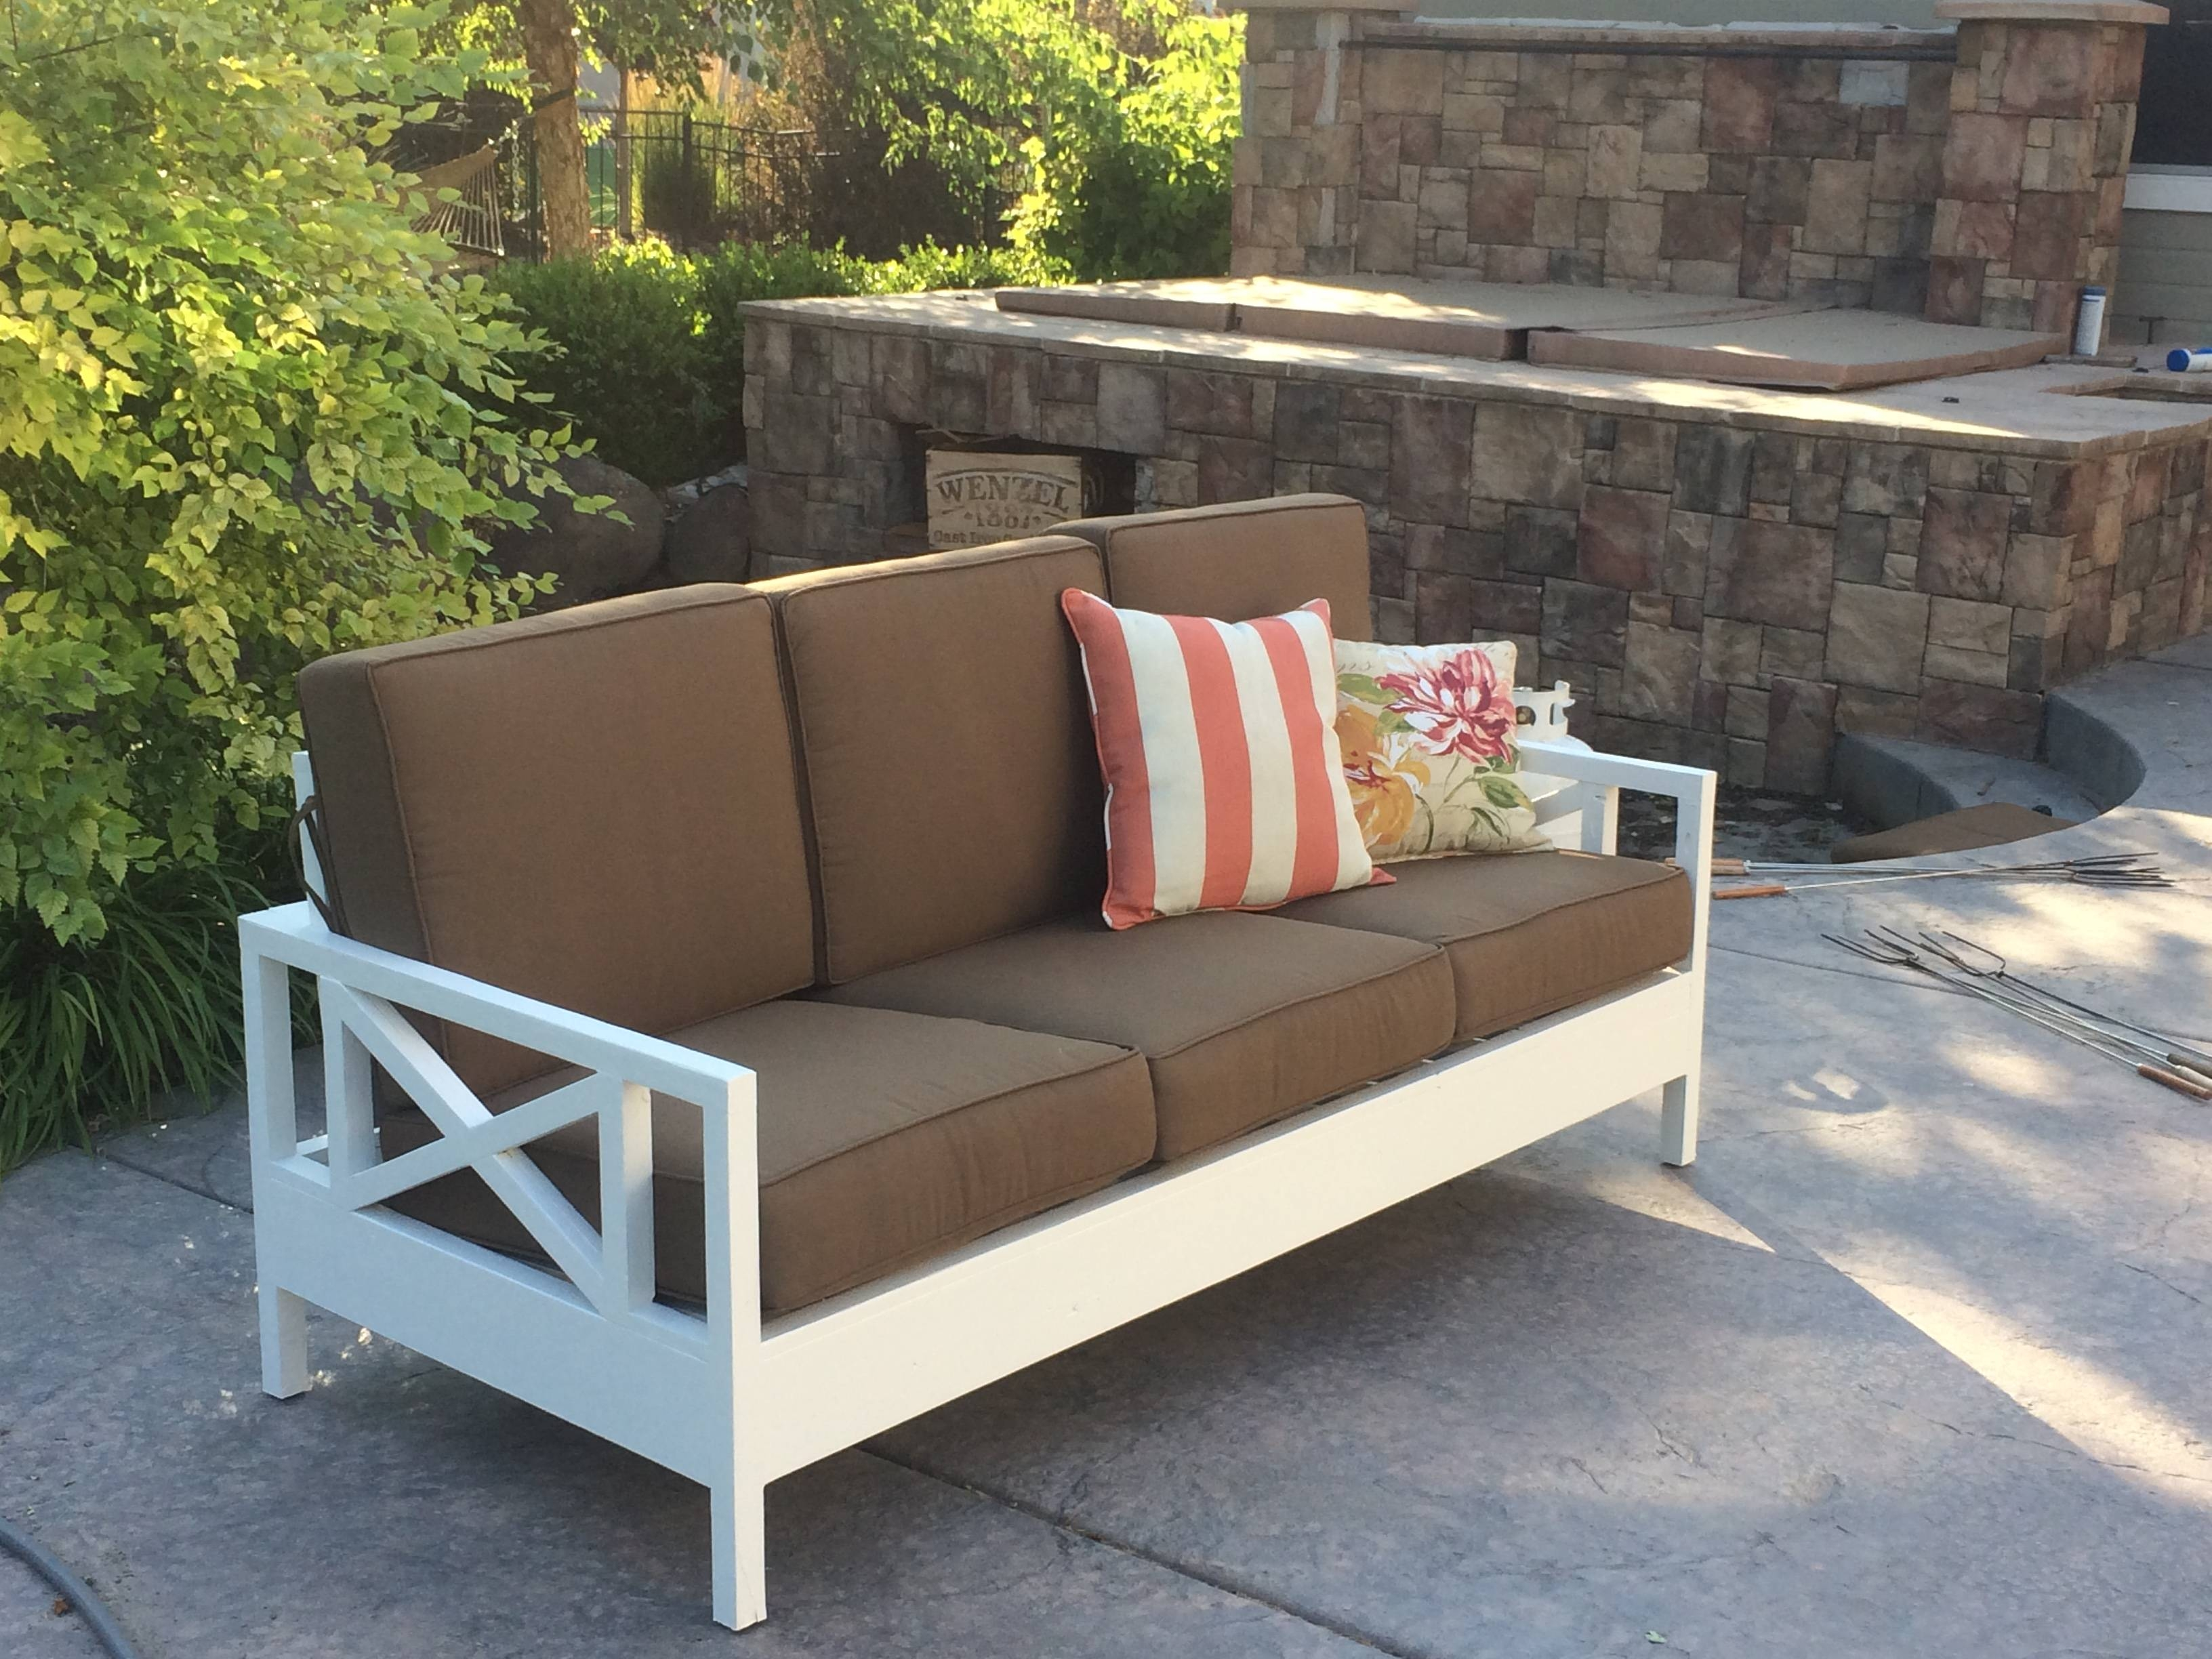 Ana White | Outdoor Sofa Mash-Up - Diy Projects intended for Ana White Outdoor Sofas (Image 9 of 15)